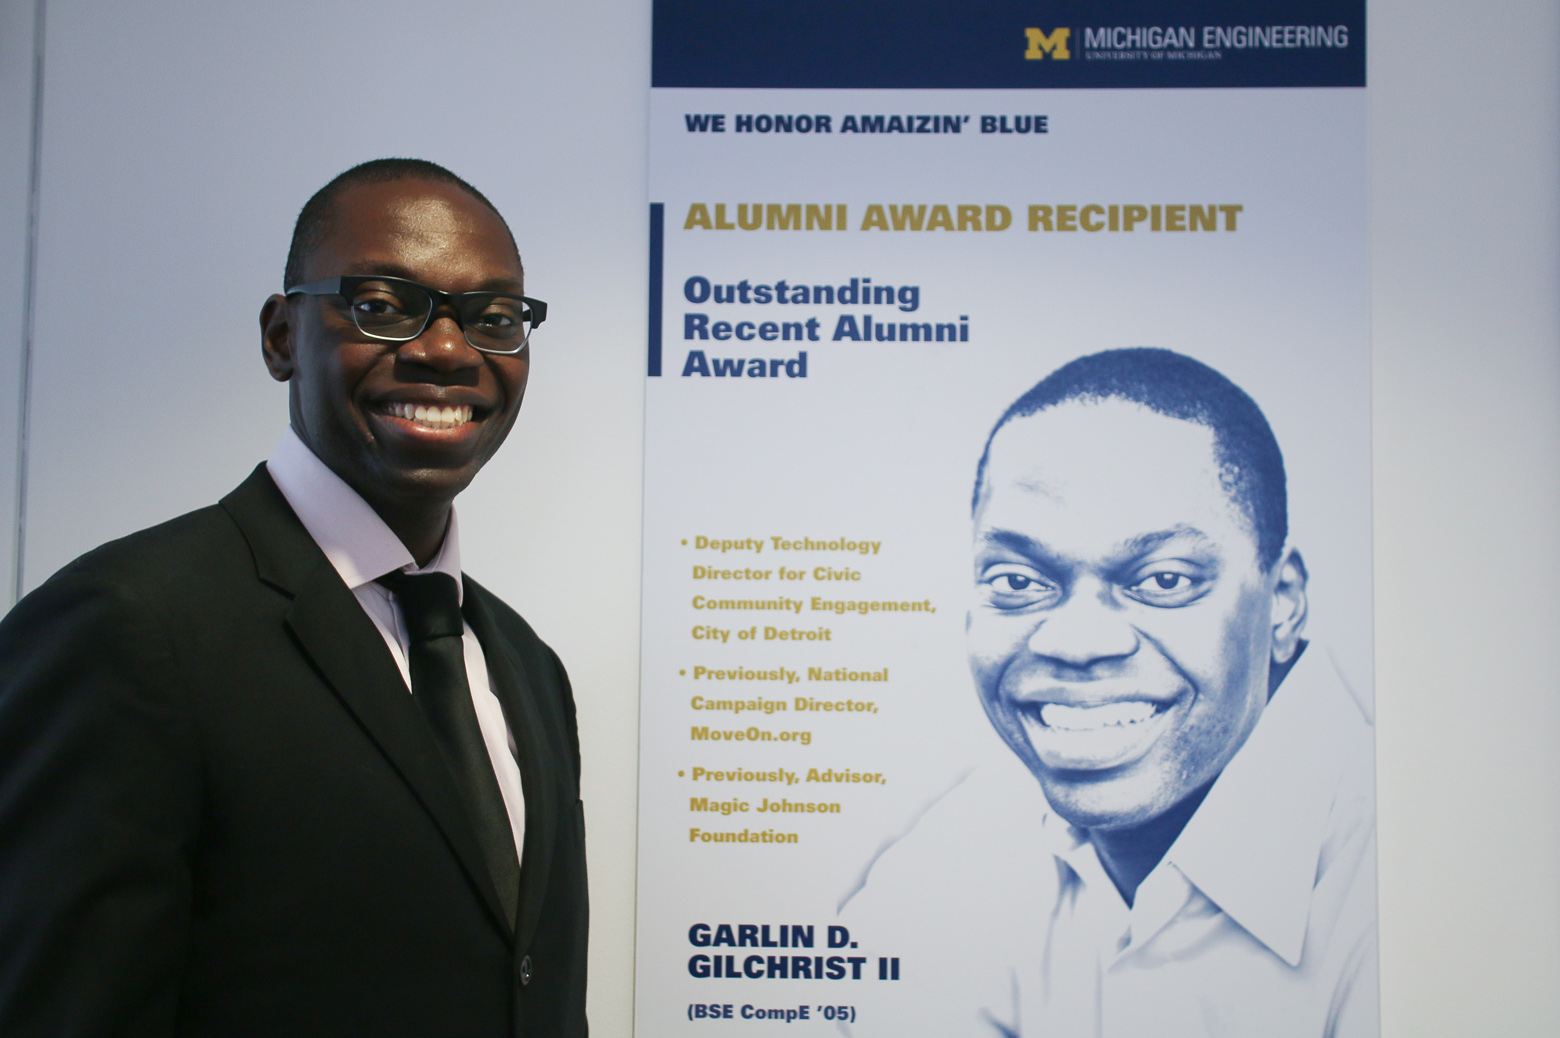 Garlin Gilchrist Outstanding Recent Alumni